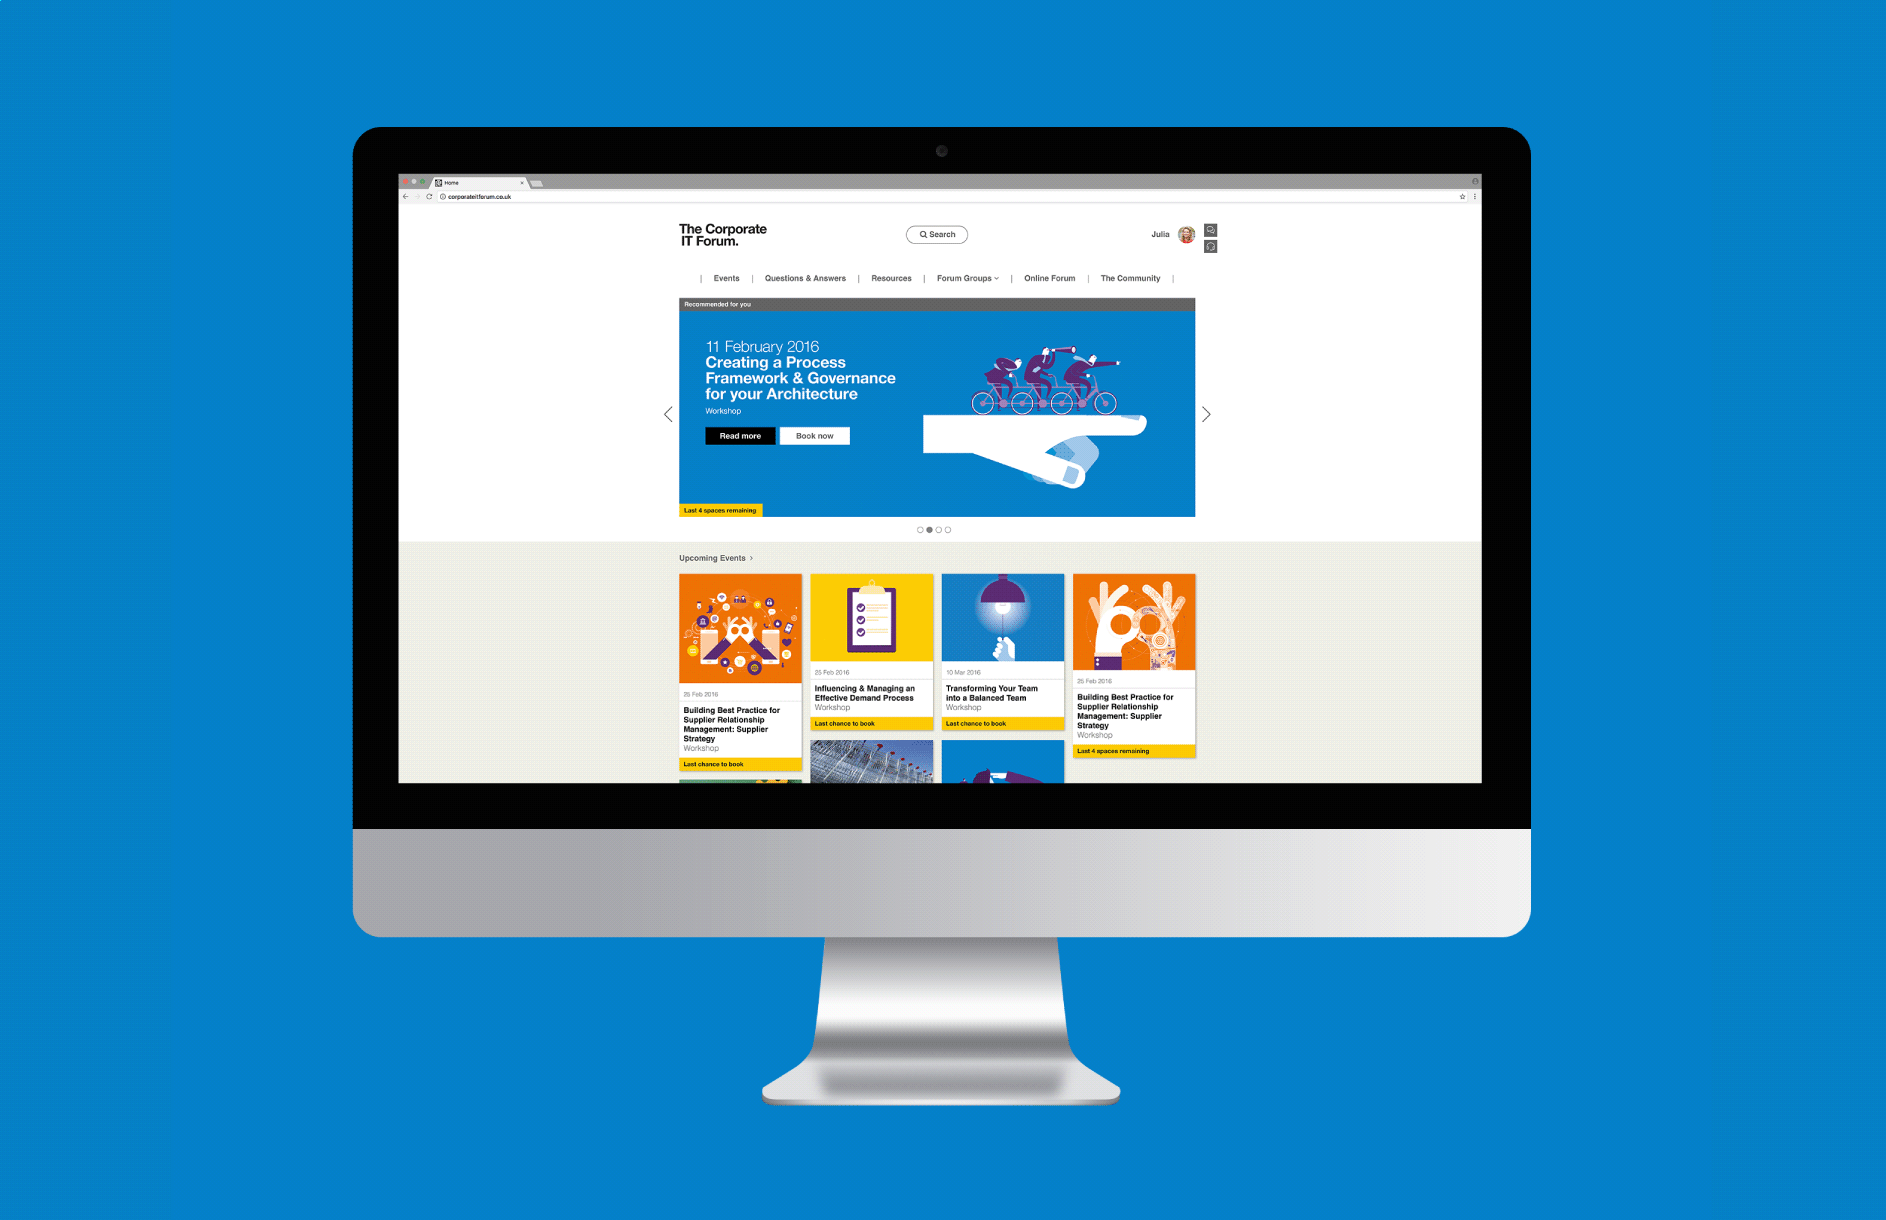 Corporate IT Forum / Rebrand and website